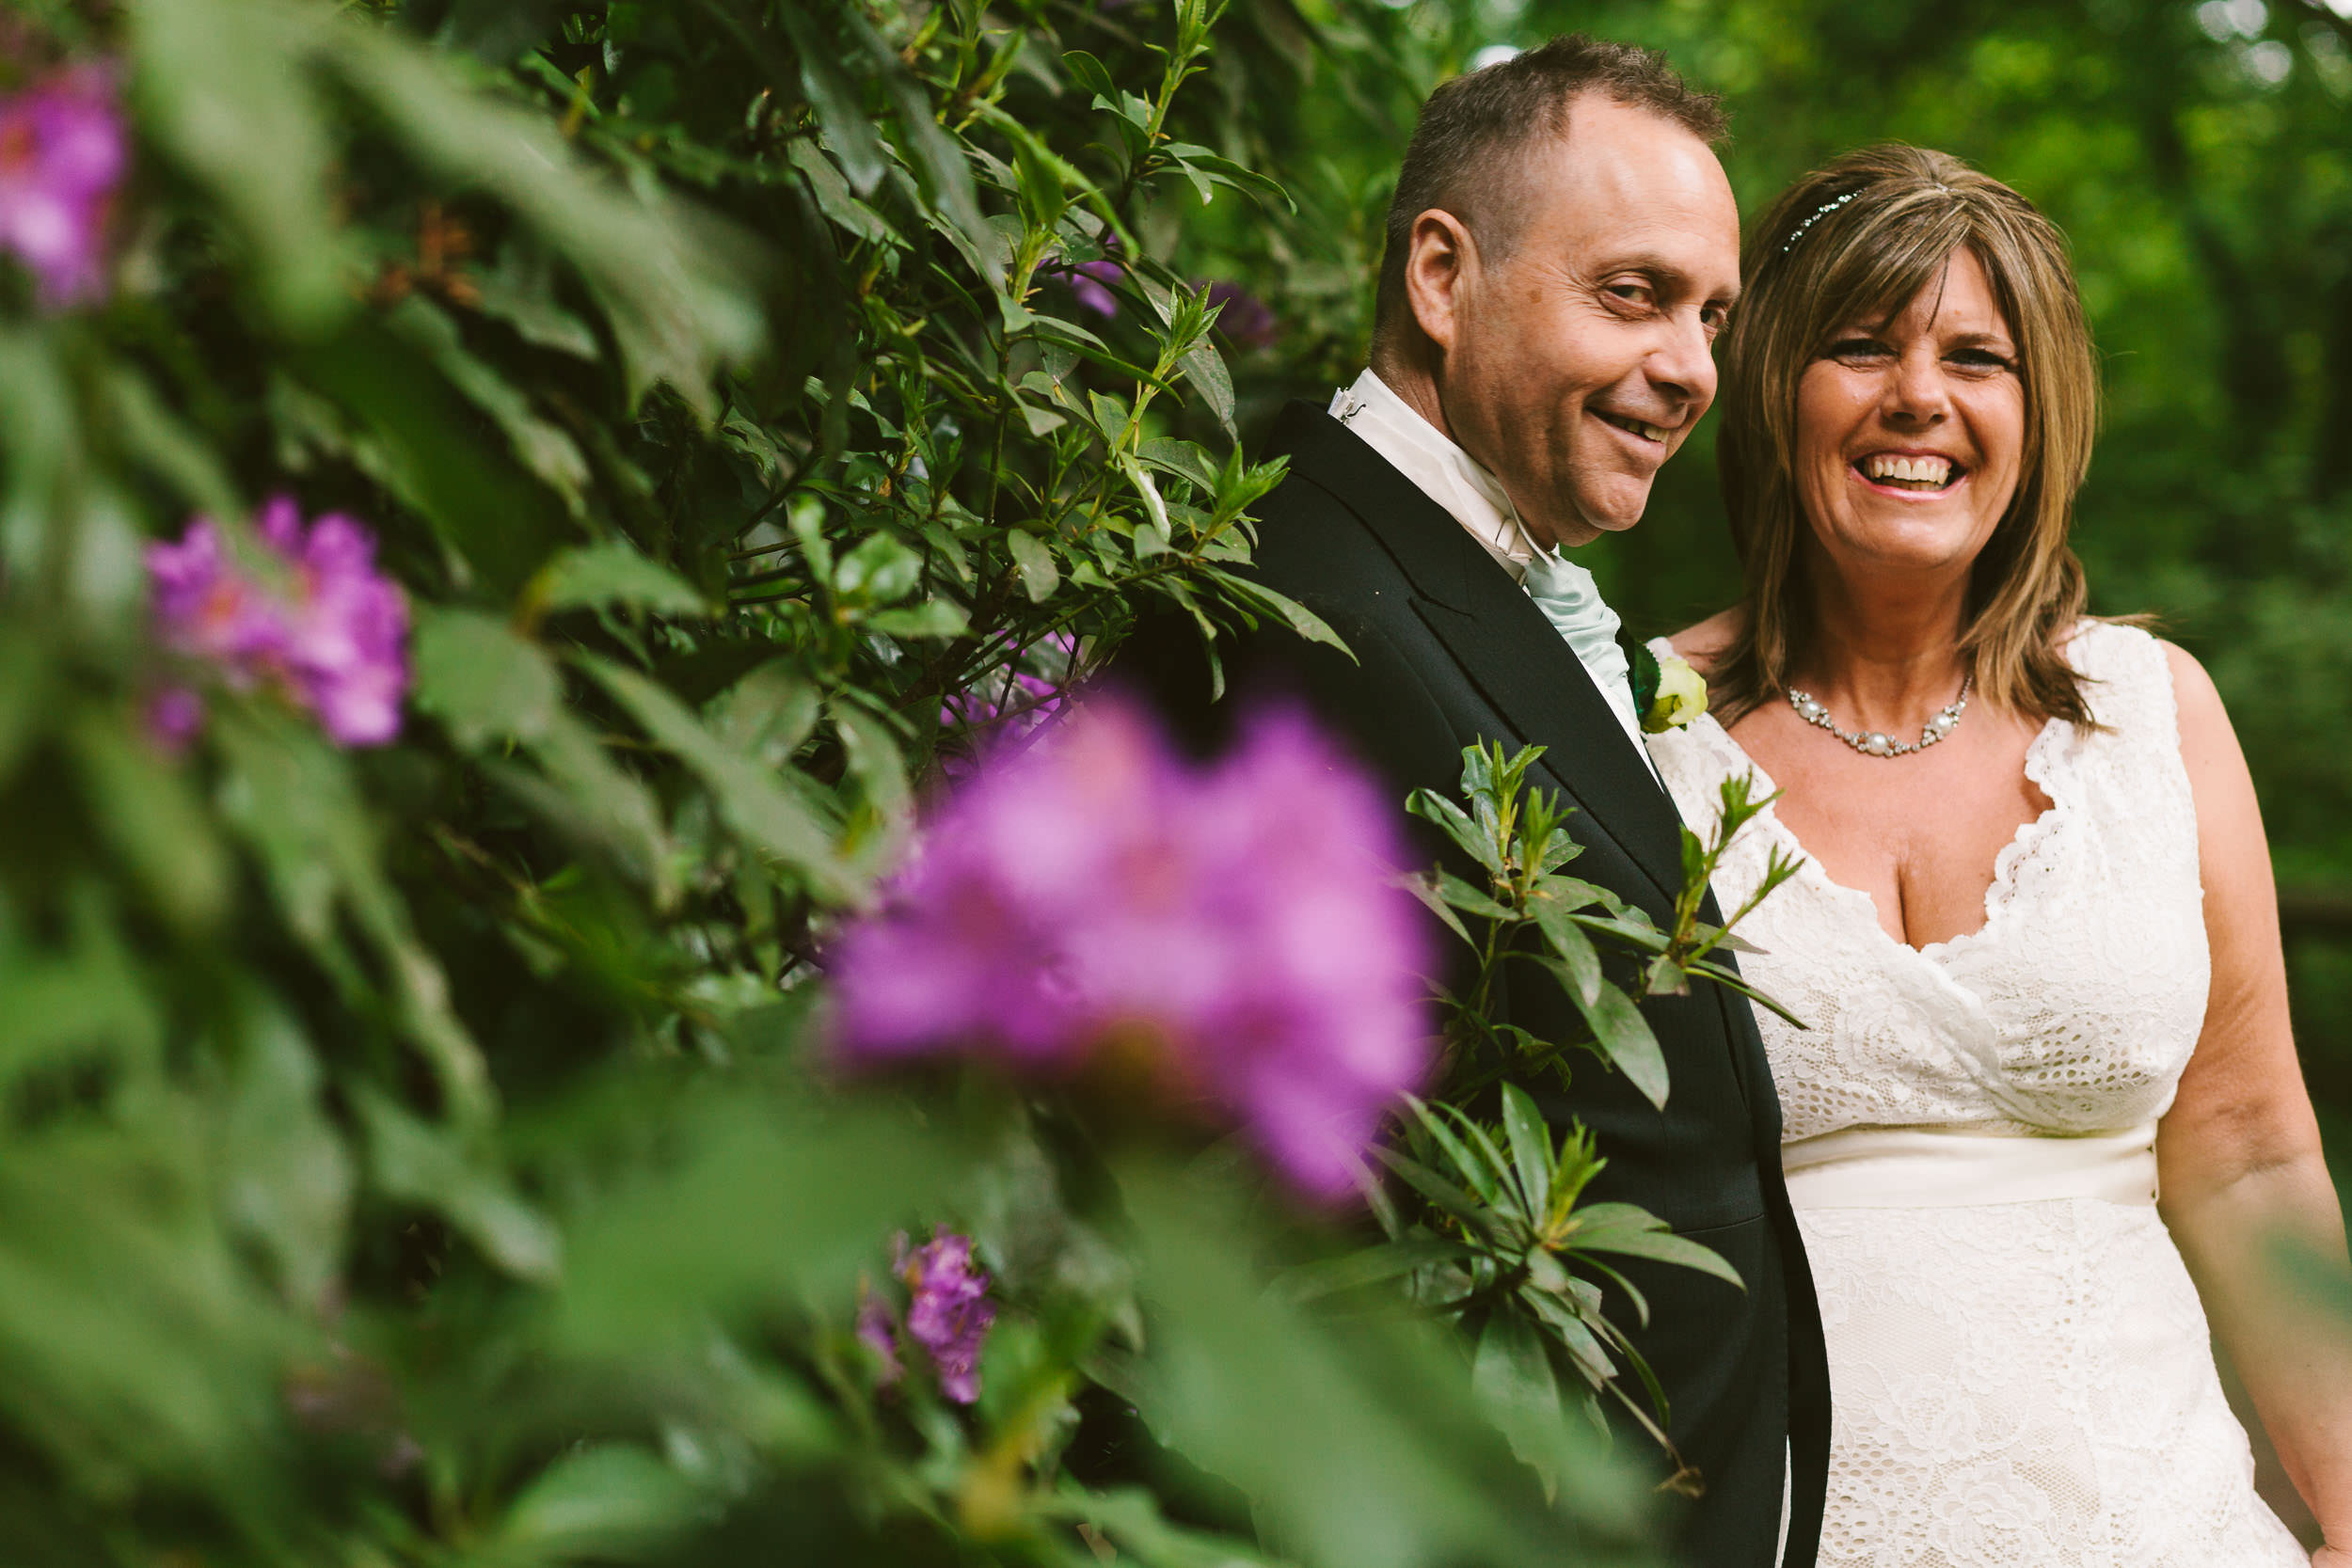 Bride and groom laugh with trees and flowers in foreground